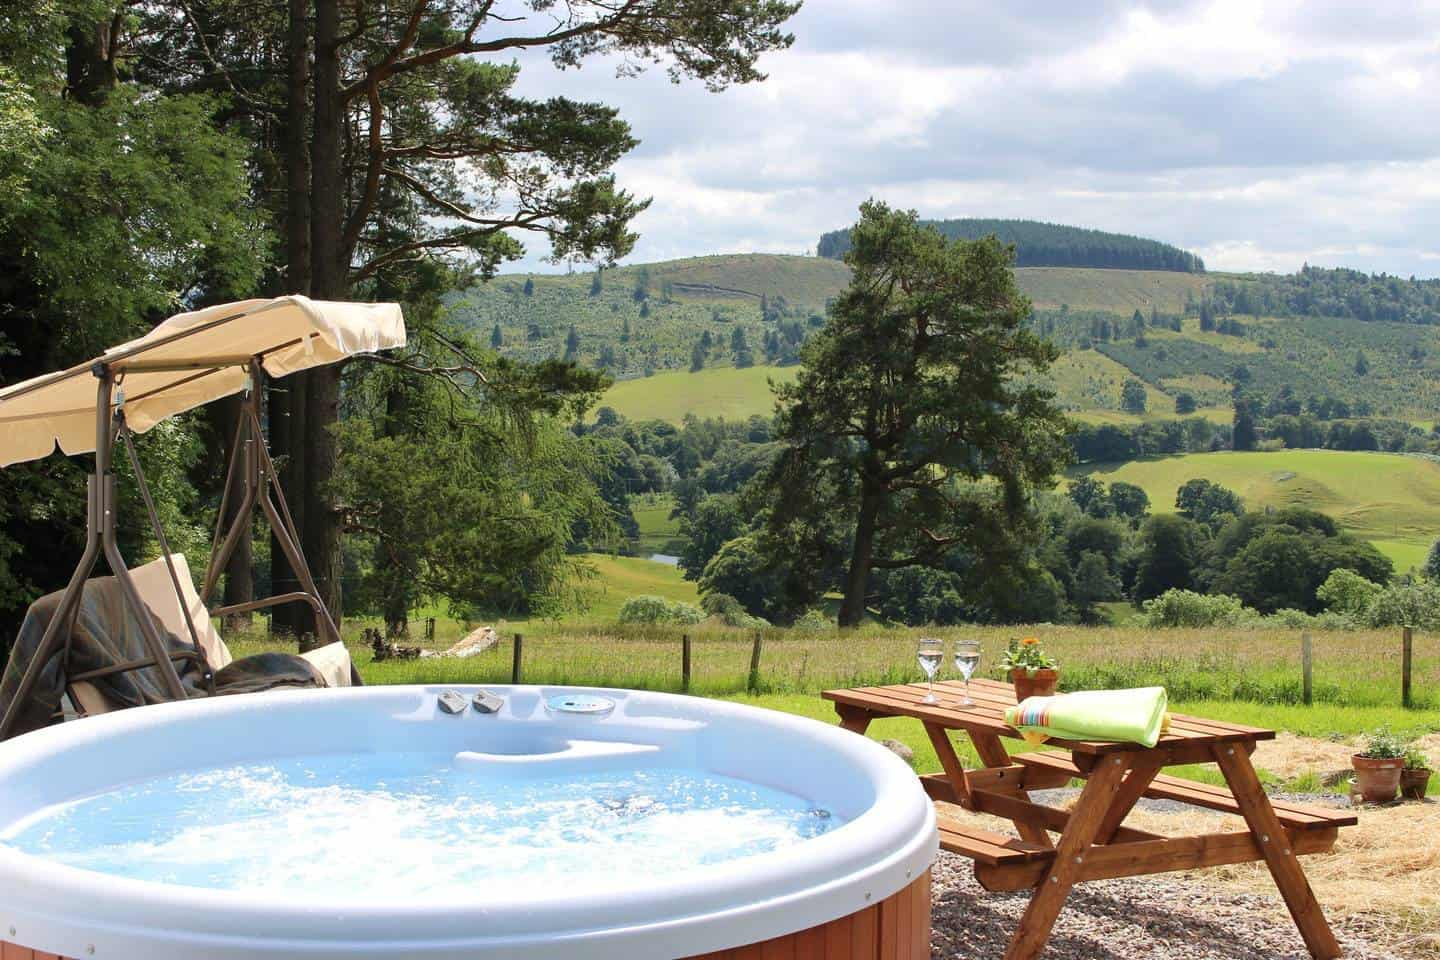 Brae cottage hot tub with views across the countryside of this stunning holiday home in Scotland